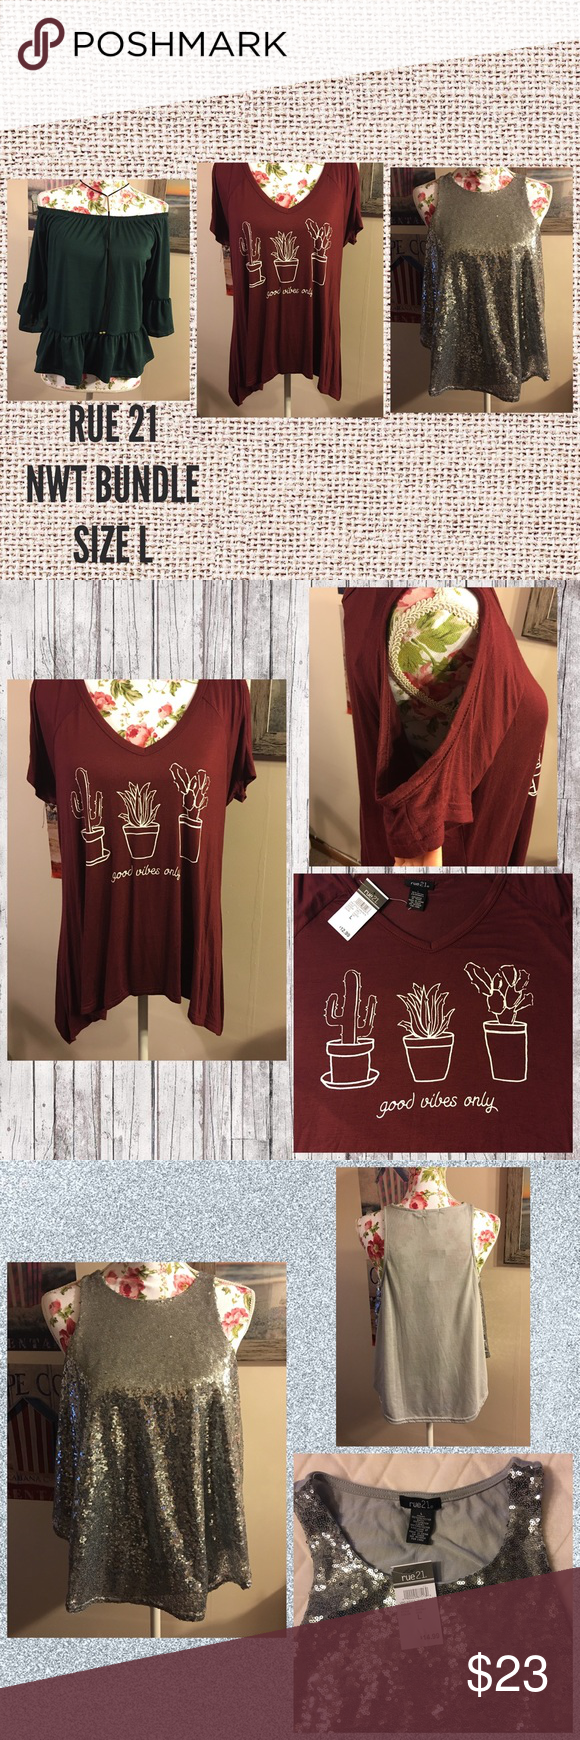 🔥PRICE DROP🔥NWT RUE 21 BUNDLE SIZE LARGE NWT RUE 21 SHIRT BUNDLE. Green off shoulder has attached choker, maroon shirt has circular cut outs in sleeve, and tank is full of beautiful sequins. Each one is an eye catcher. Rue 21 Tops Tees - Short Sleeve